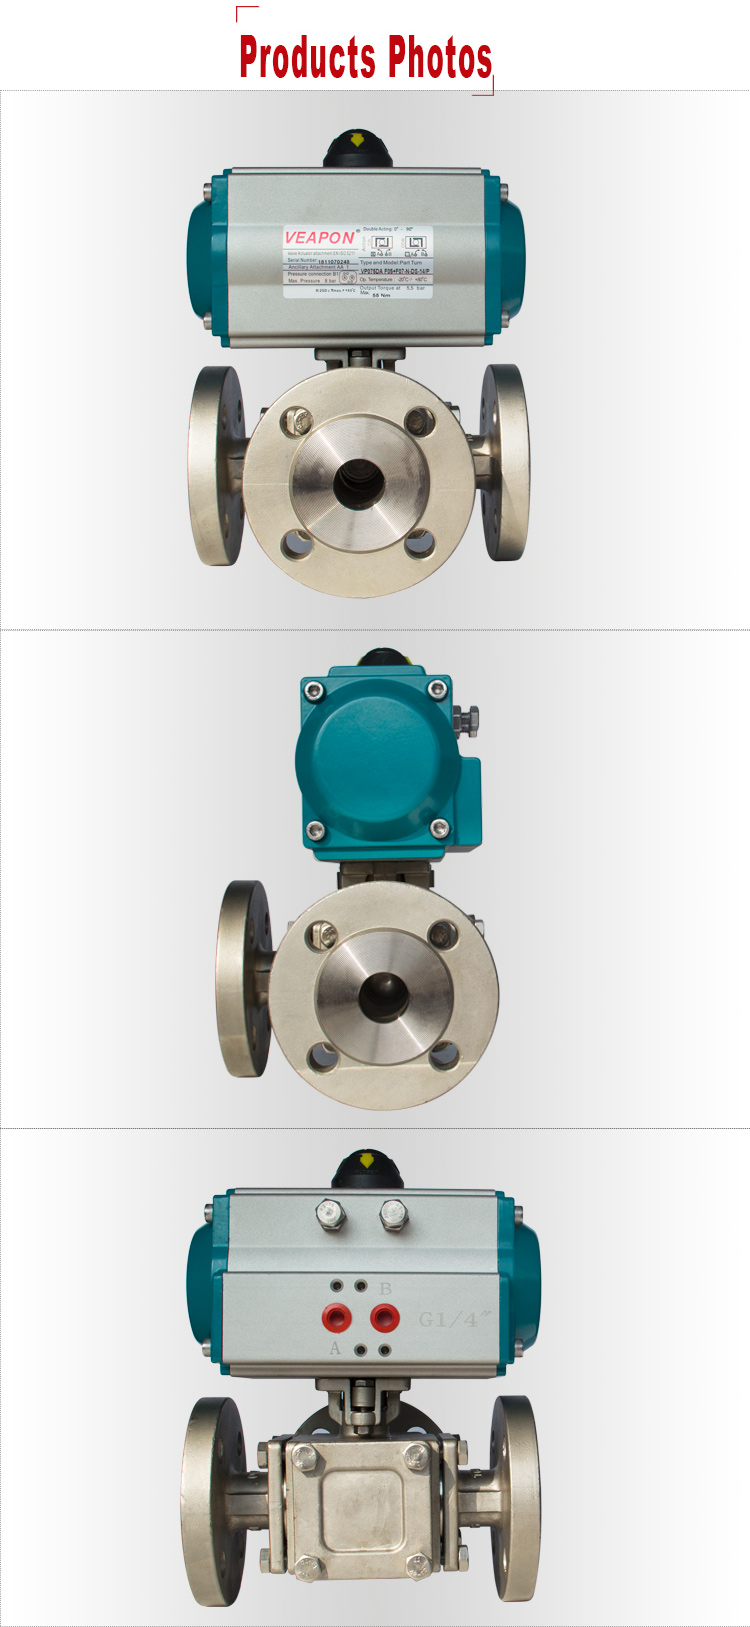 Product Photo detail for 3-ways Pneumatic Flanged Ball Valve.jpg